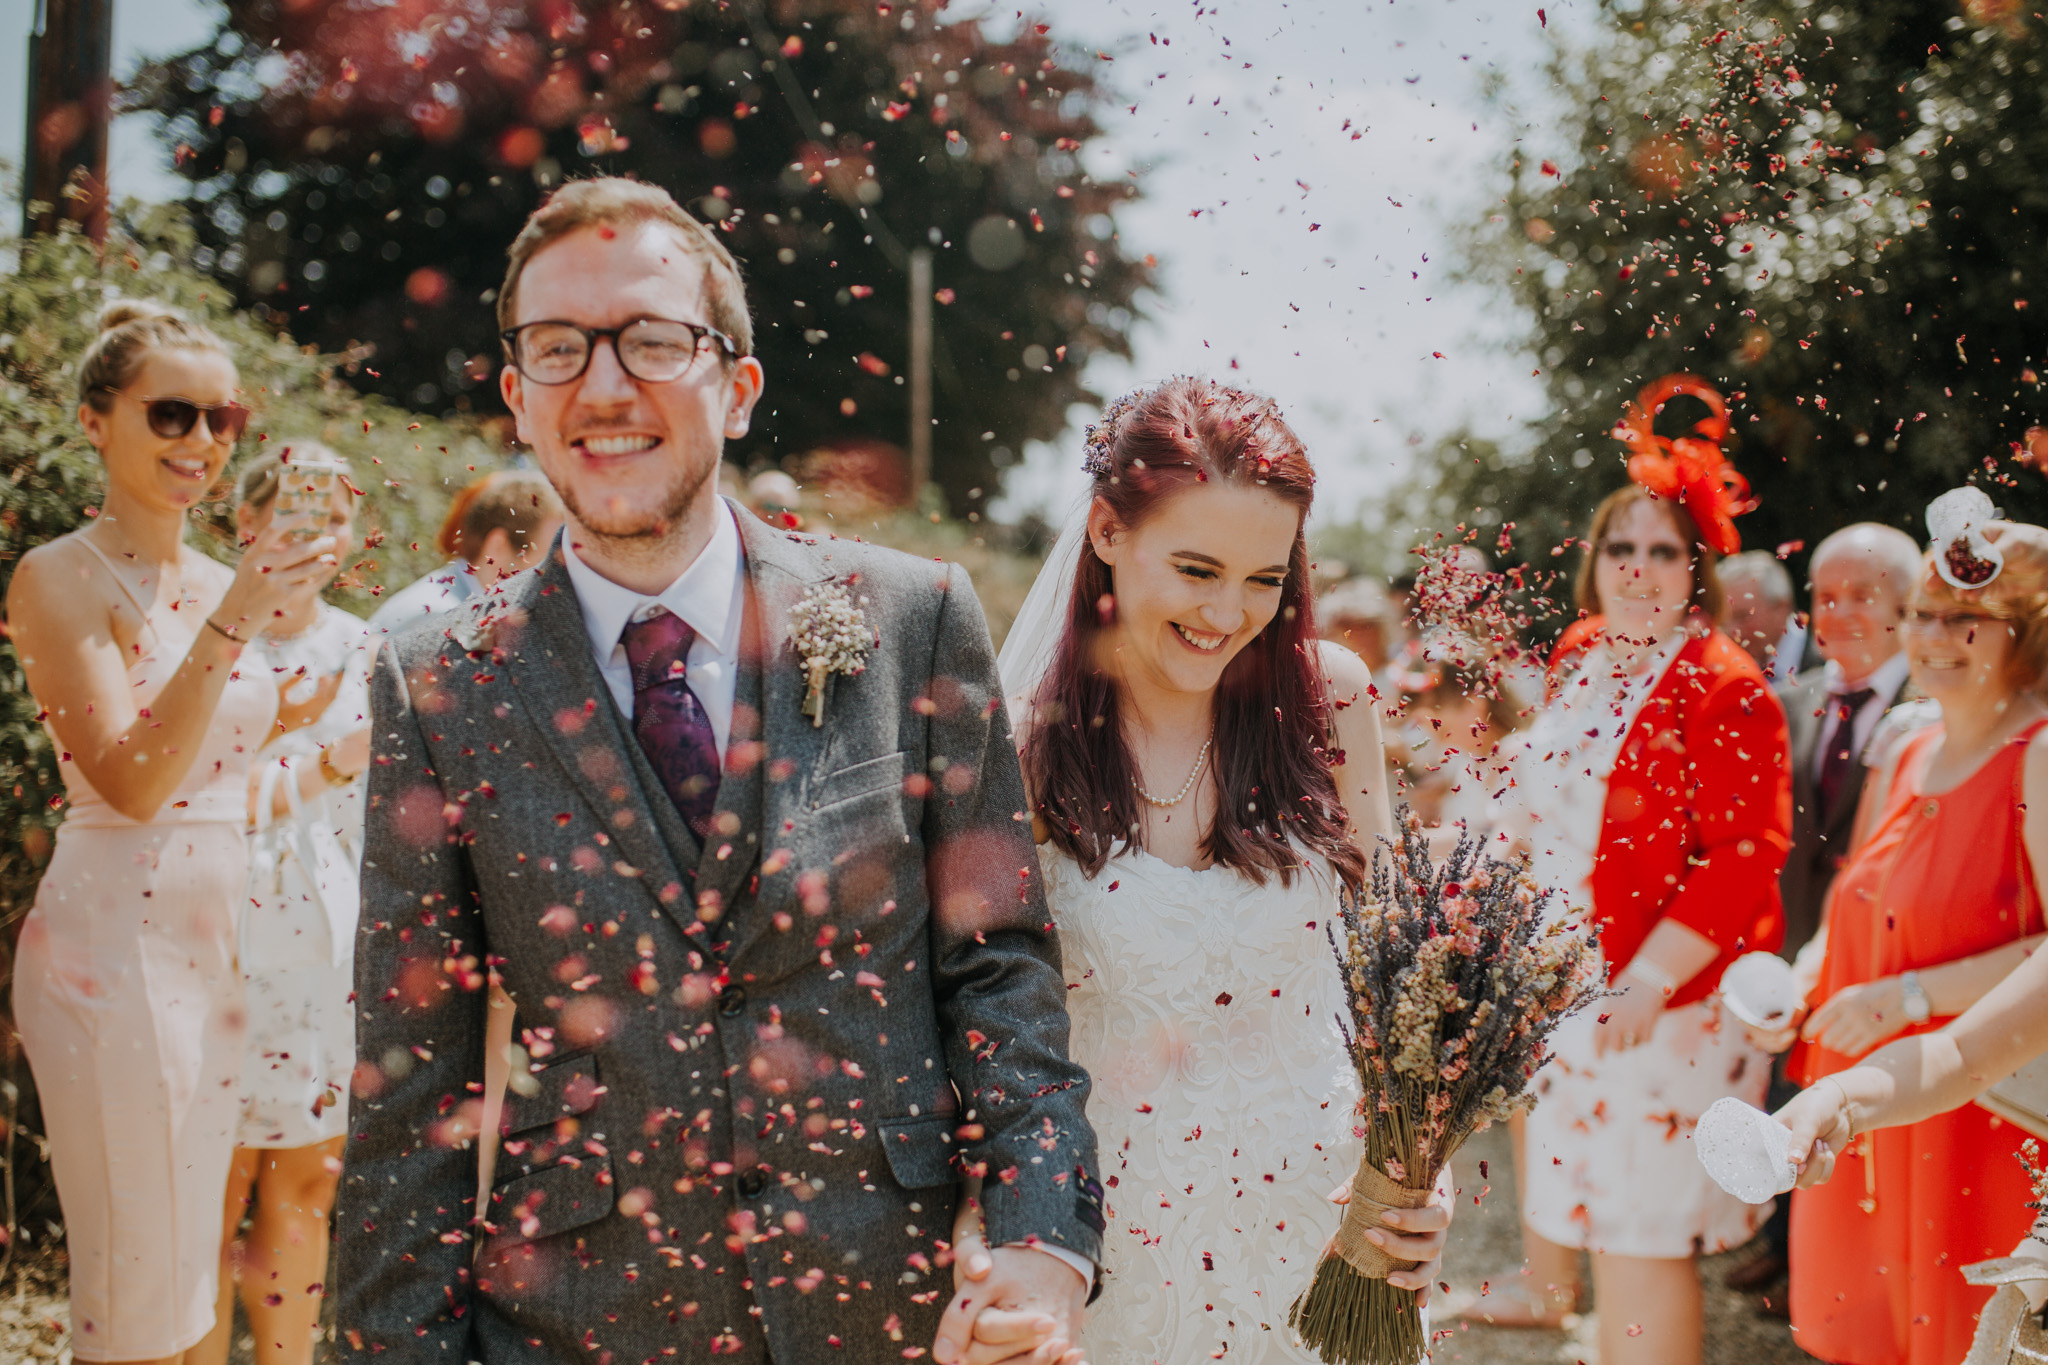 guests throw confetti on the wedding day